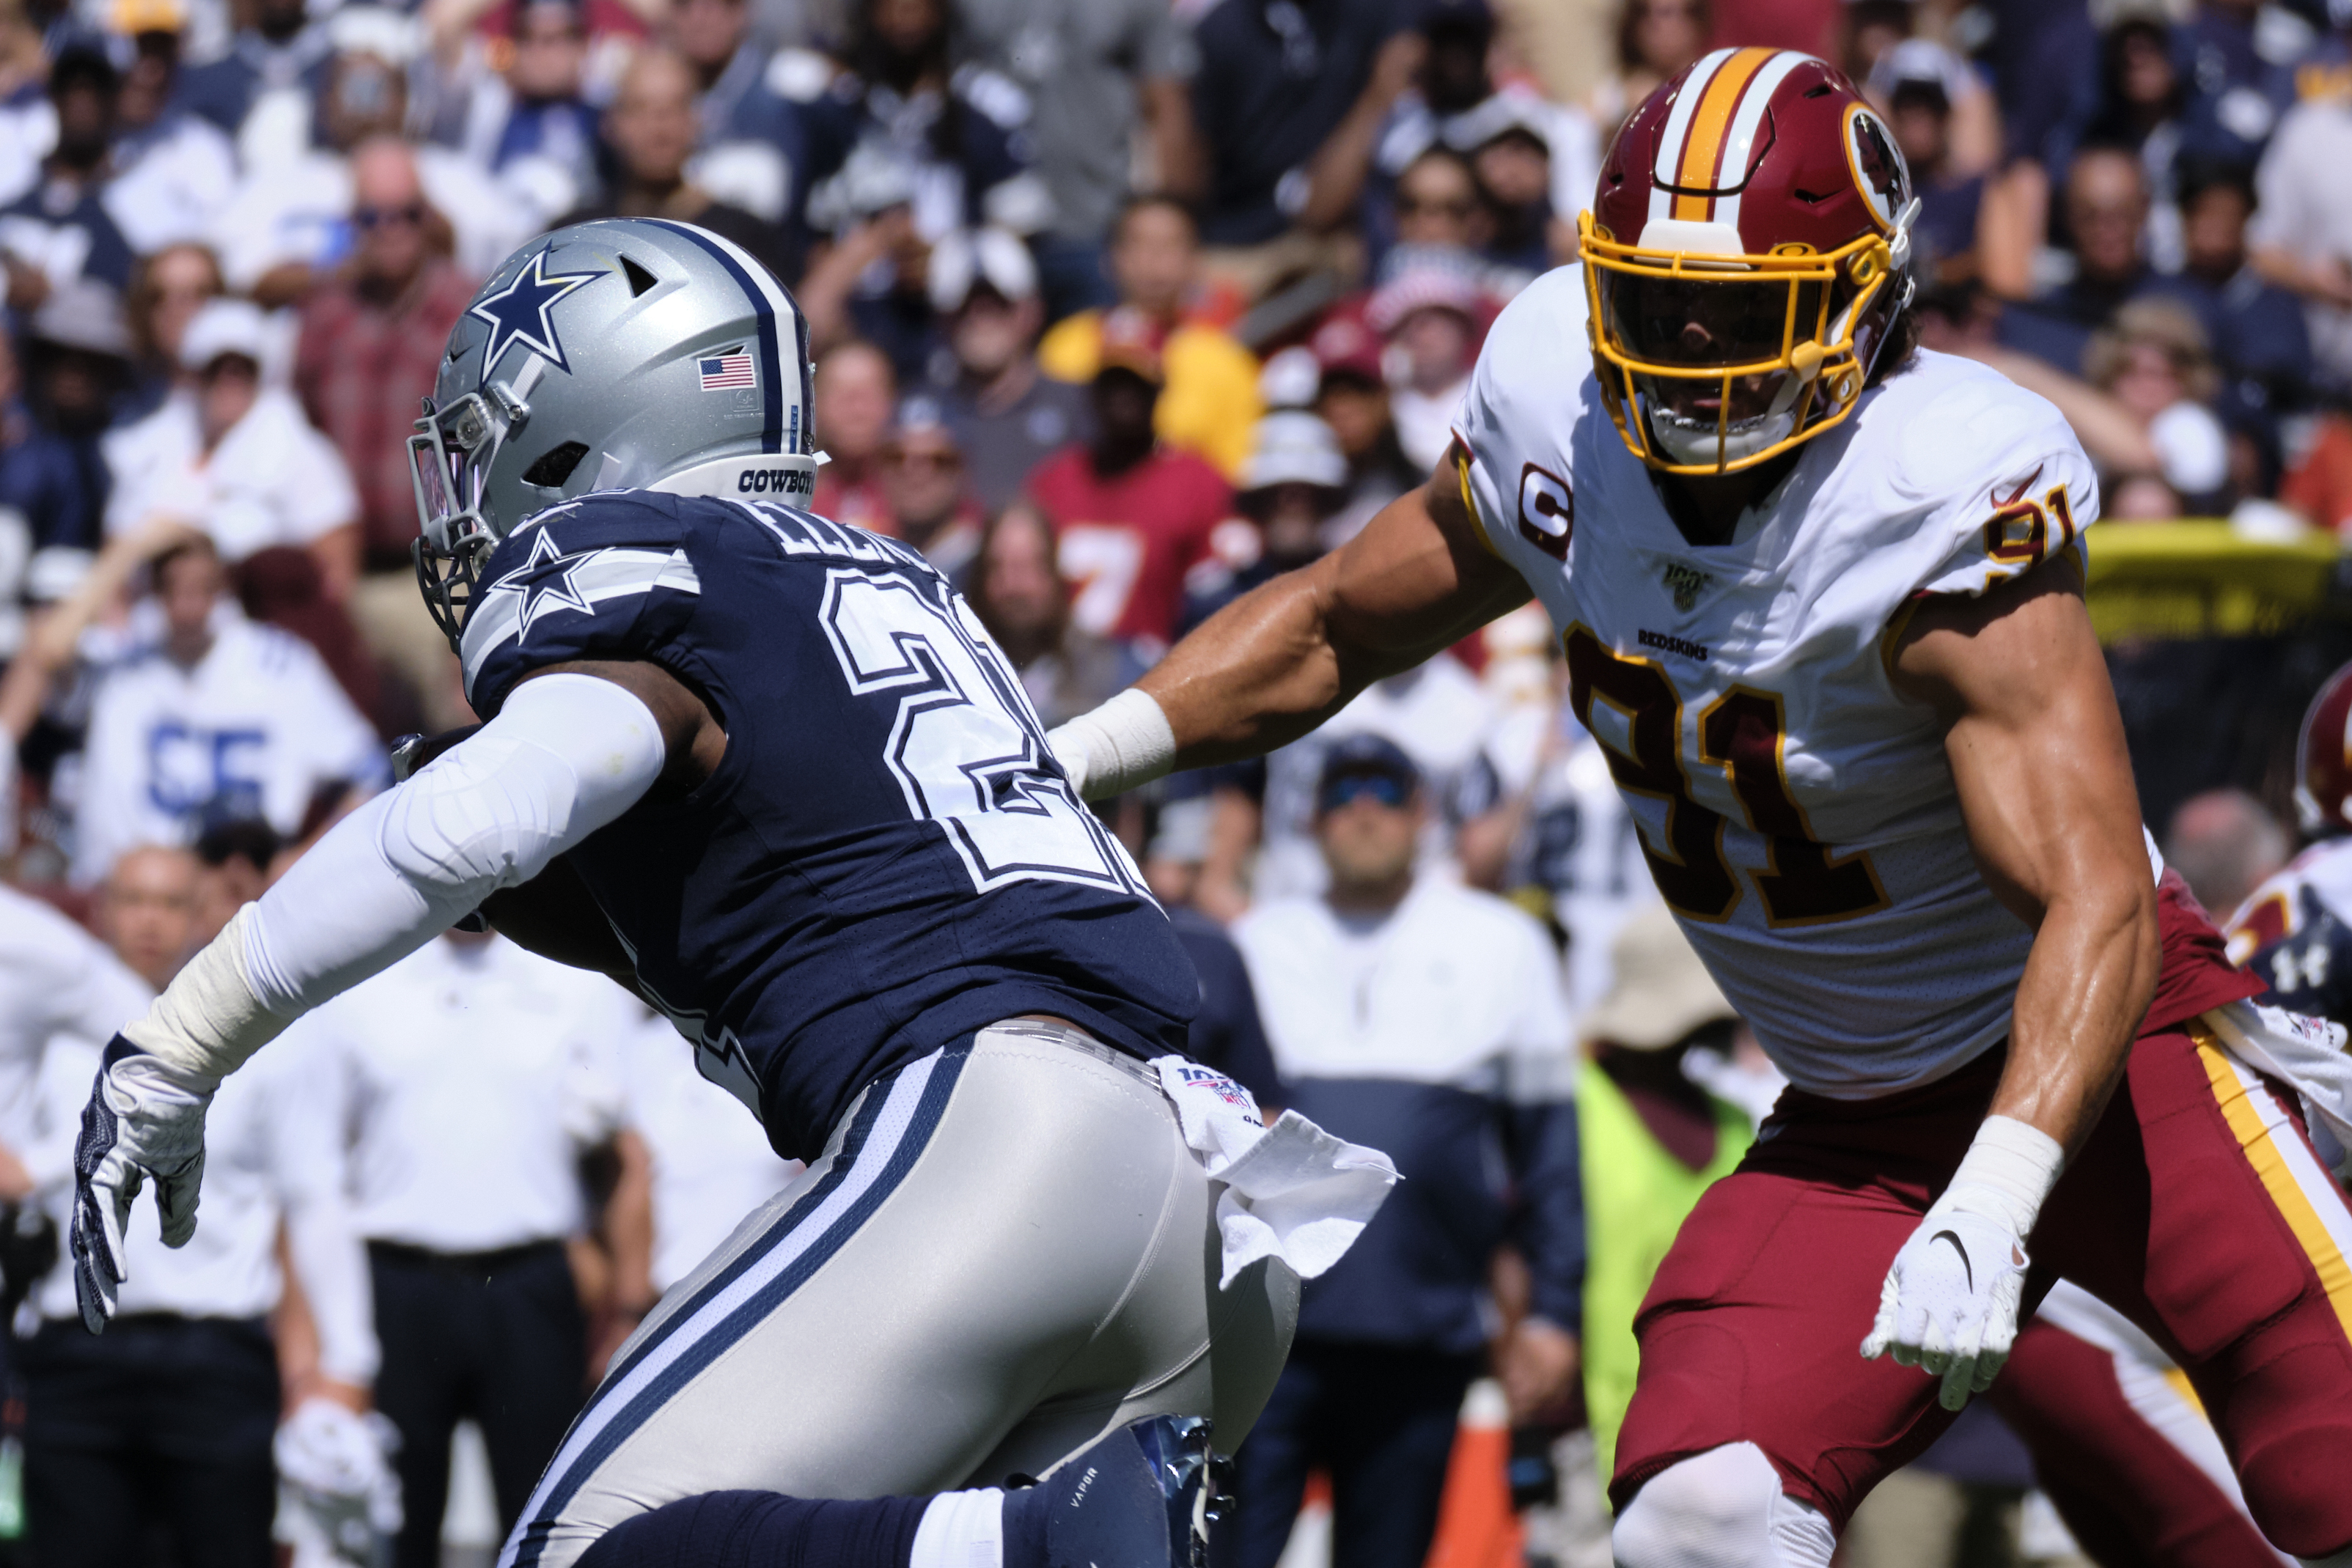 Redskins defense gives reasons to worry after horrendous start